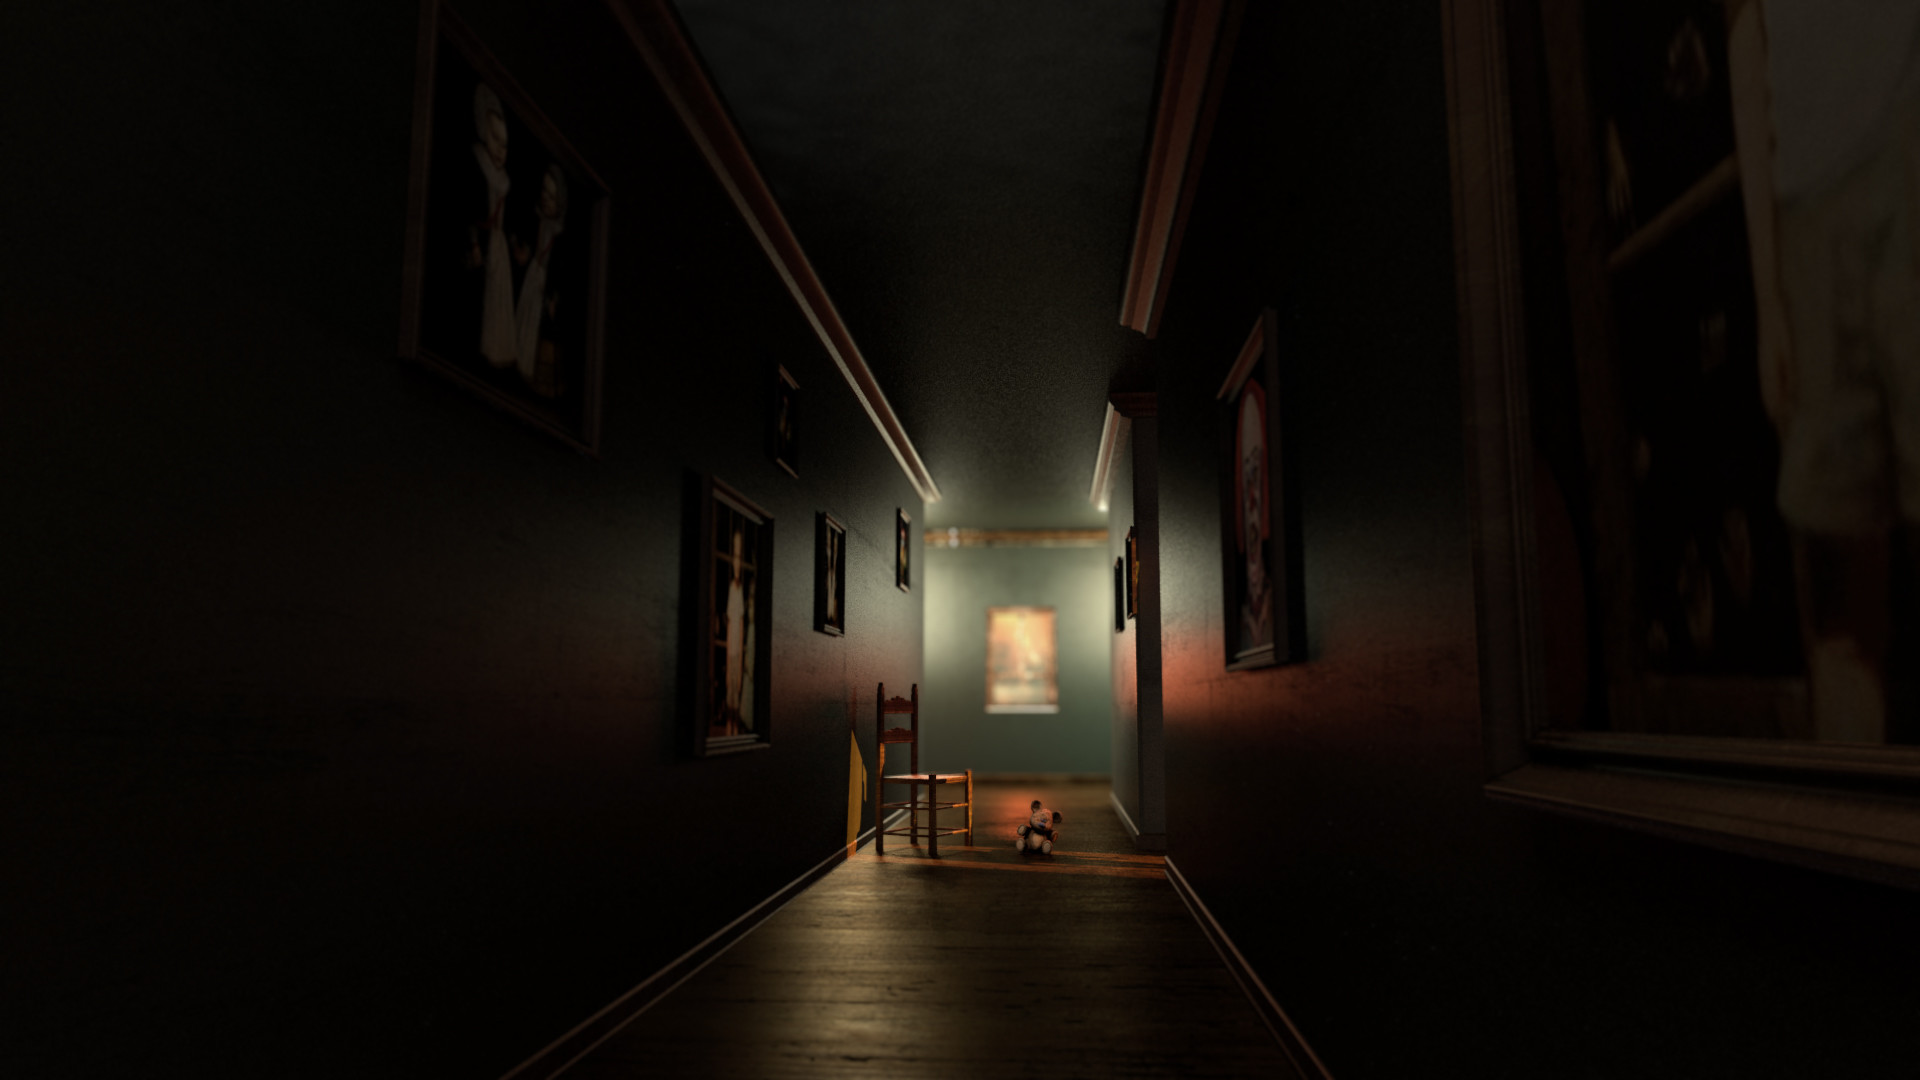 adding an object of focus in the center & ArtStation - Creepy\Horror Lighting practice Ron haimov